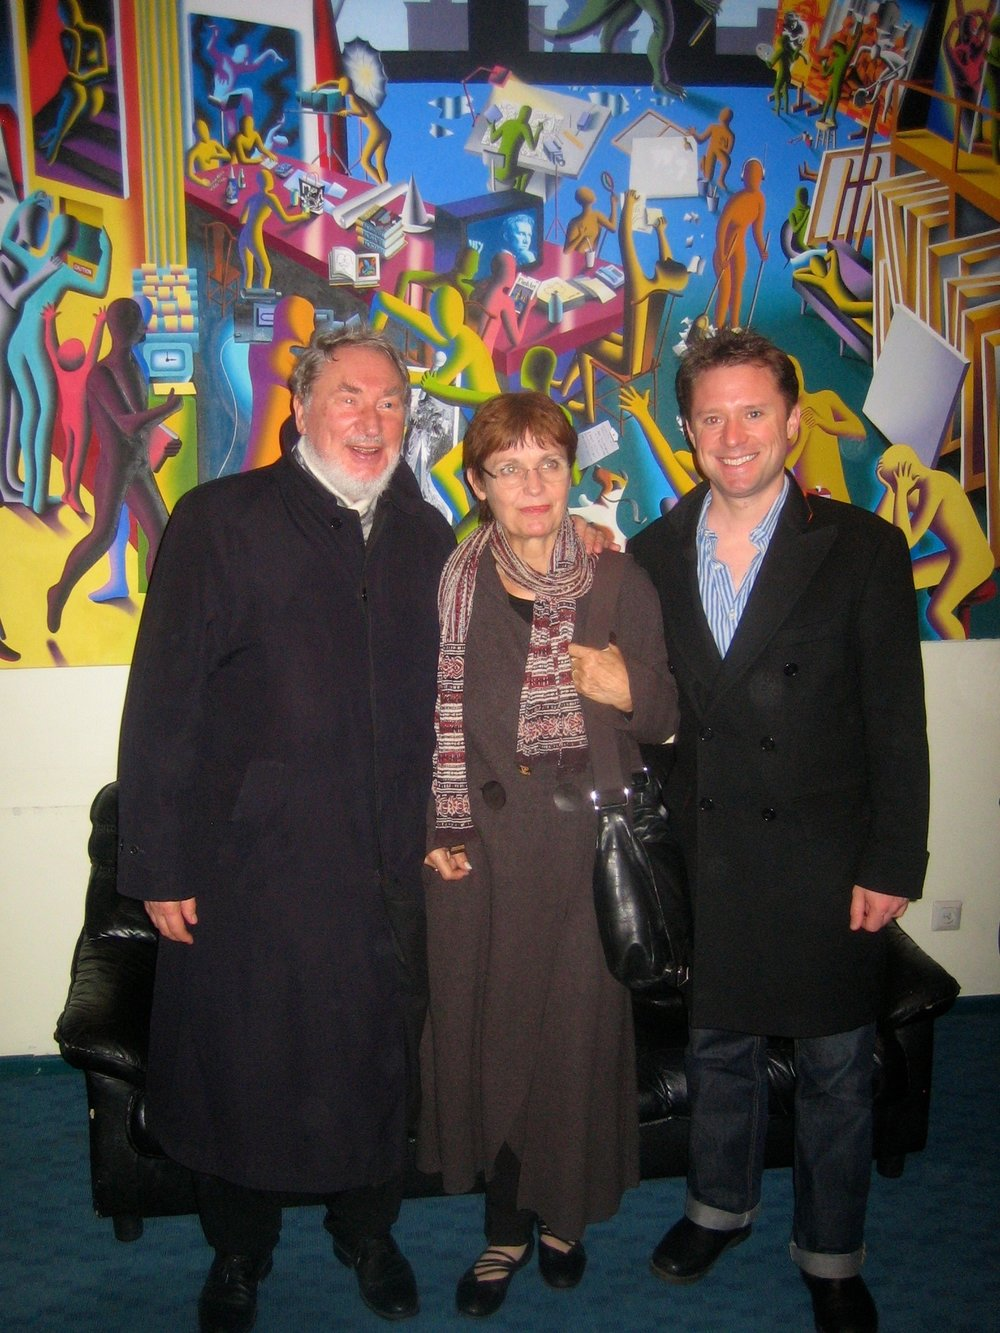 With Mr and Mrs HK Gruber in Estonia in October 2011. Wonderrrrrrful!